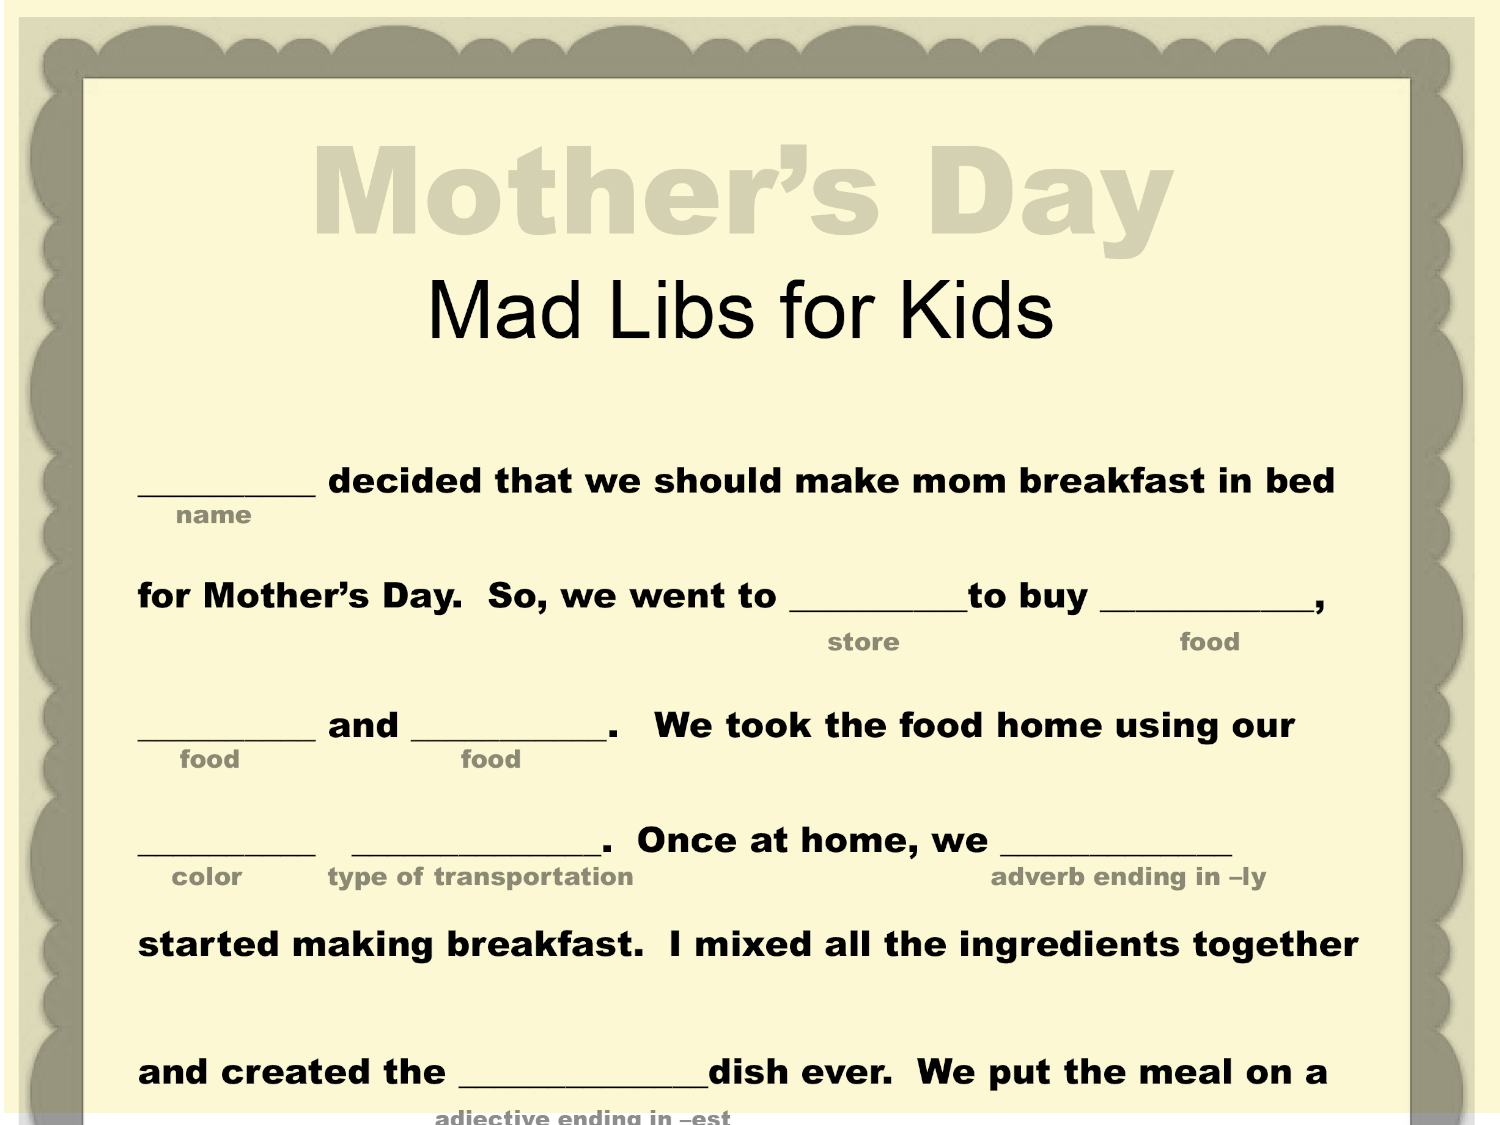 Madlib Worksheet